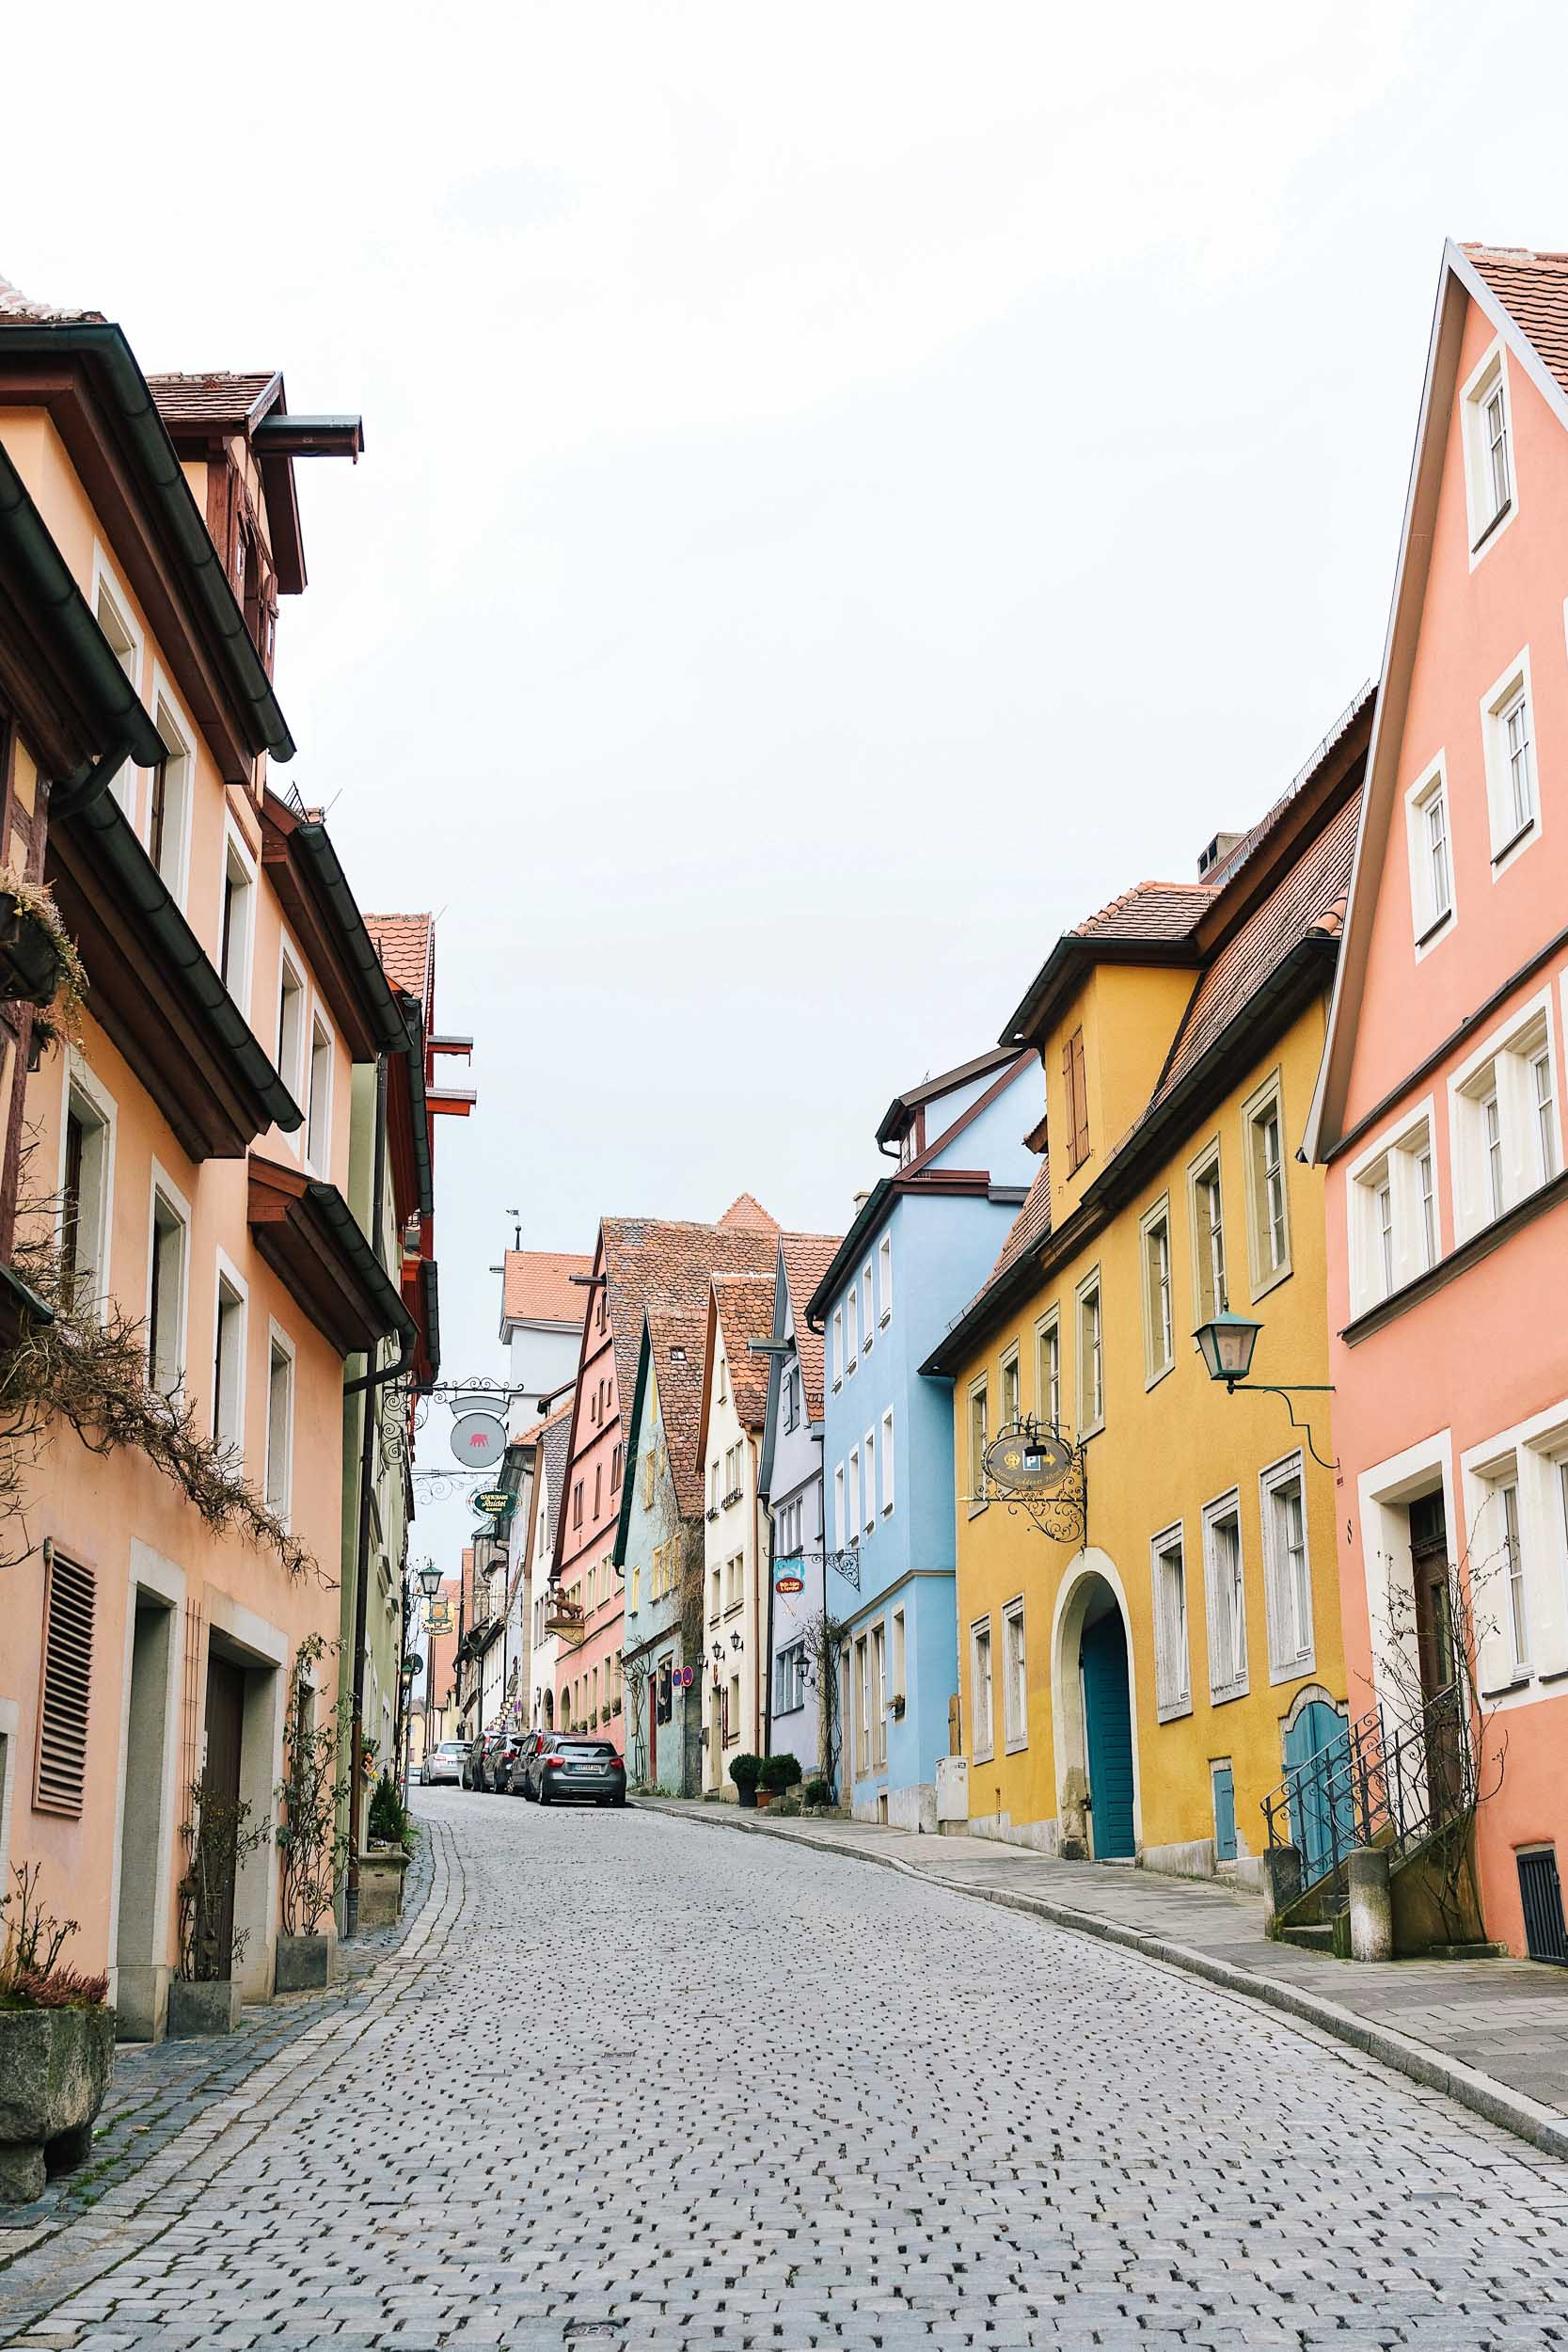 Rothenburg ob der Tauber in Germany's Bavaria region is a real life fairytale